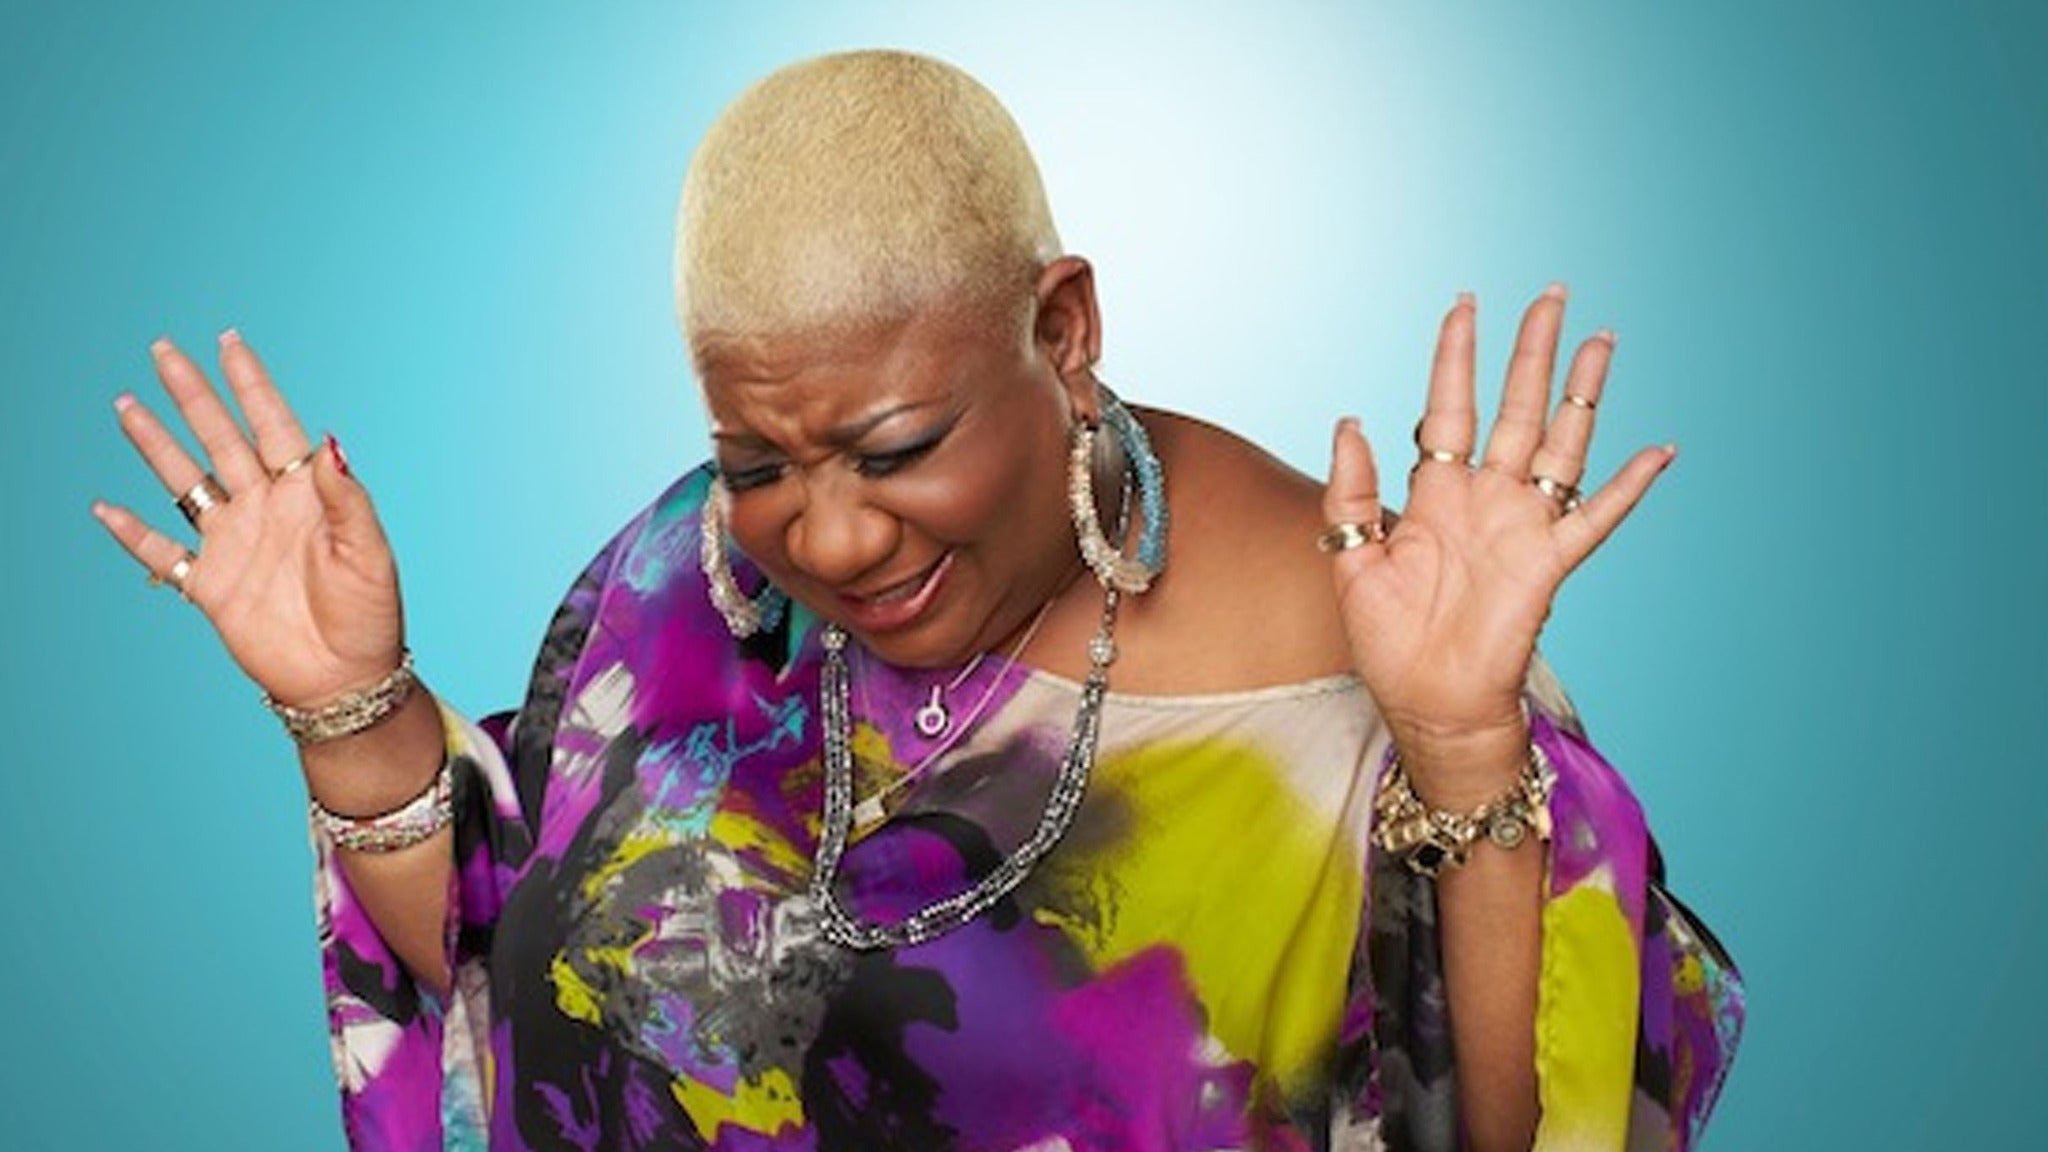 Luenell Presented by Jimmy Kimmel's Comedy Club